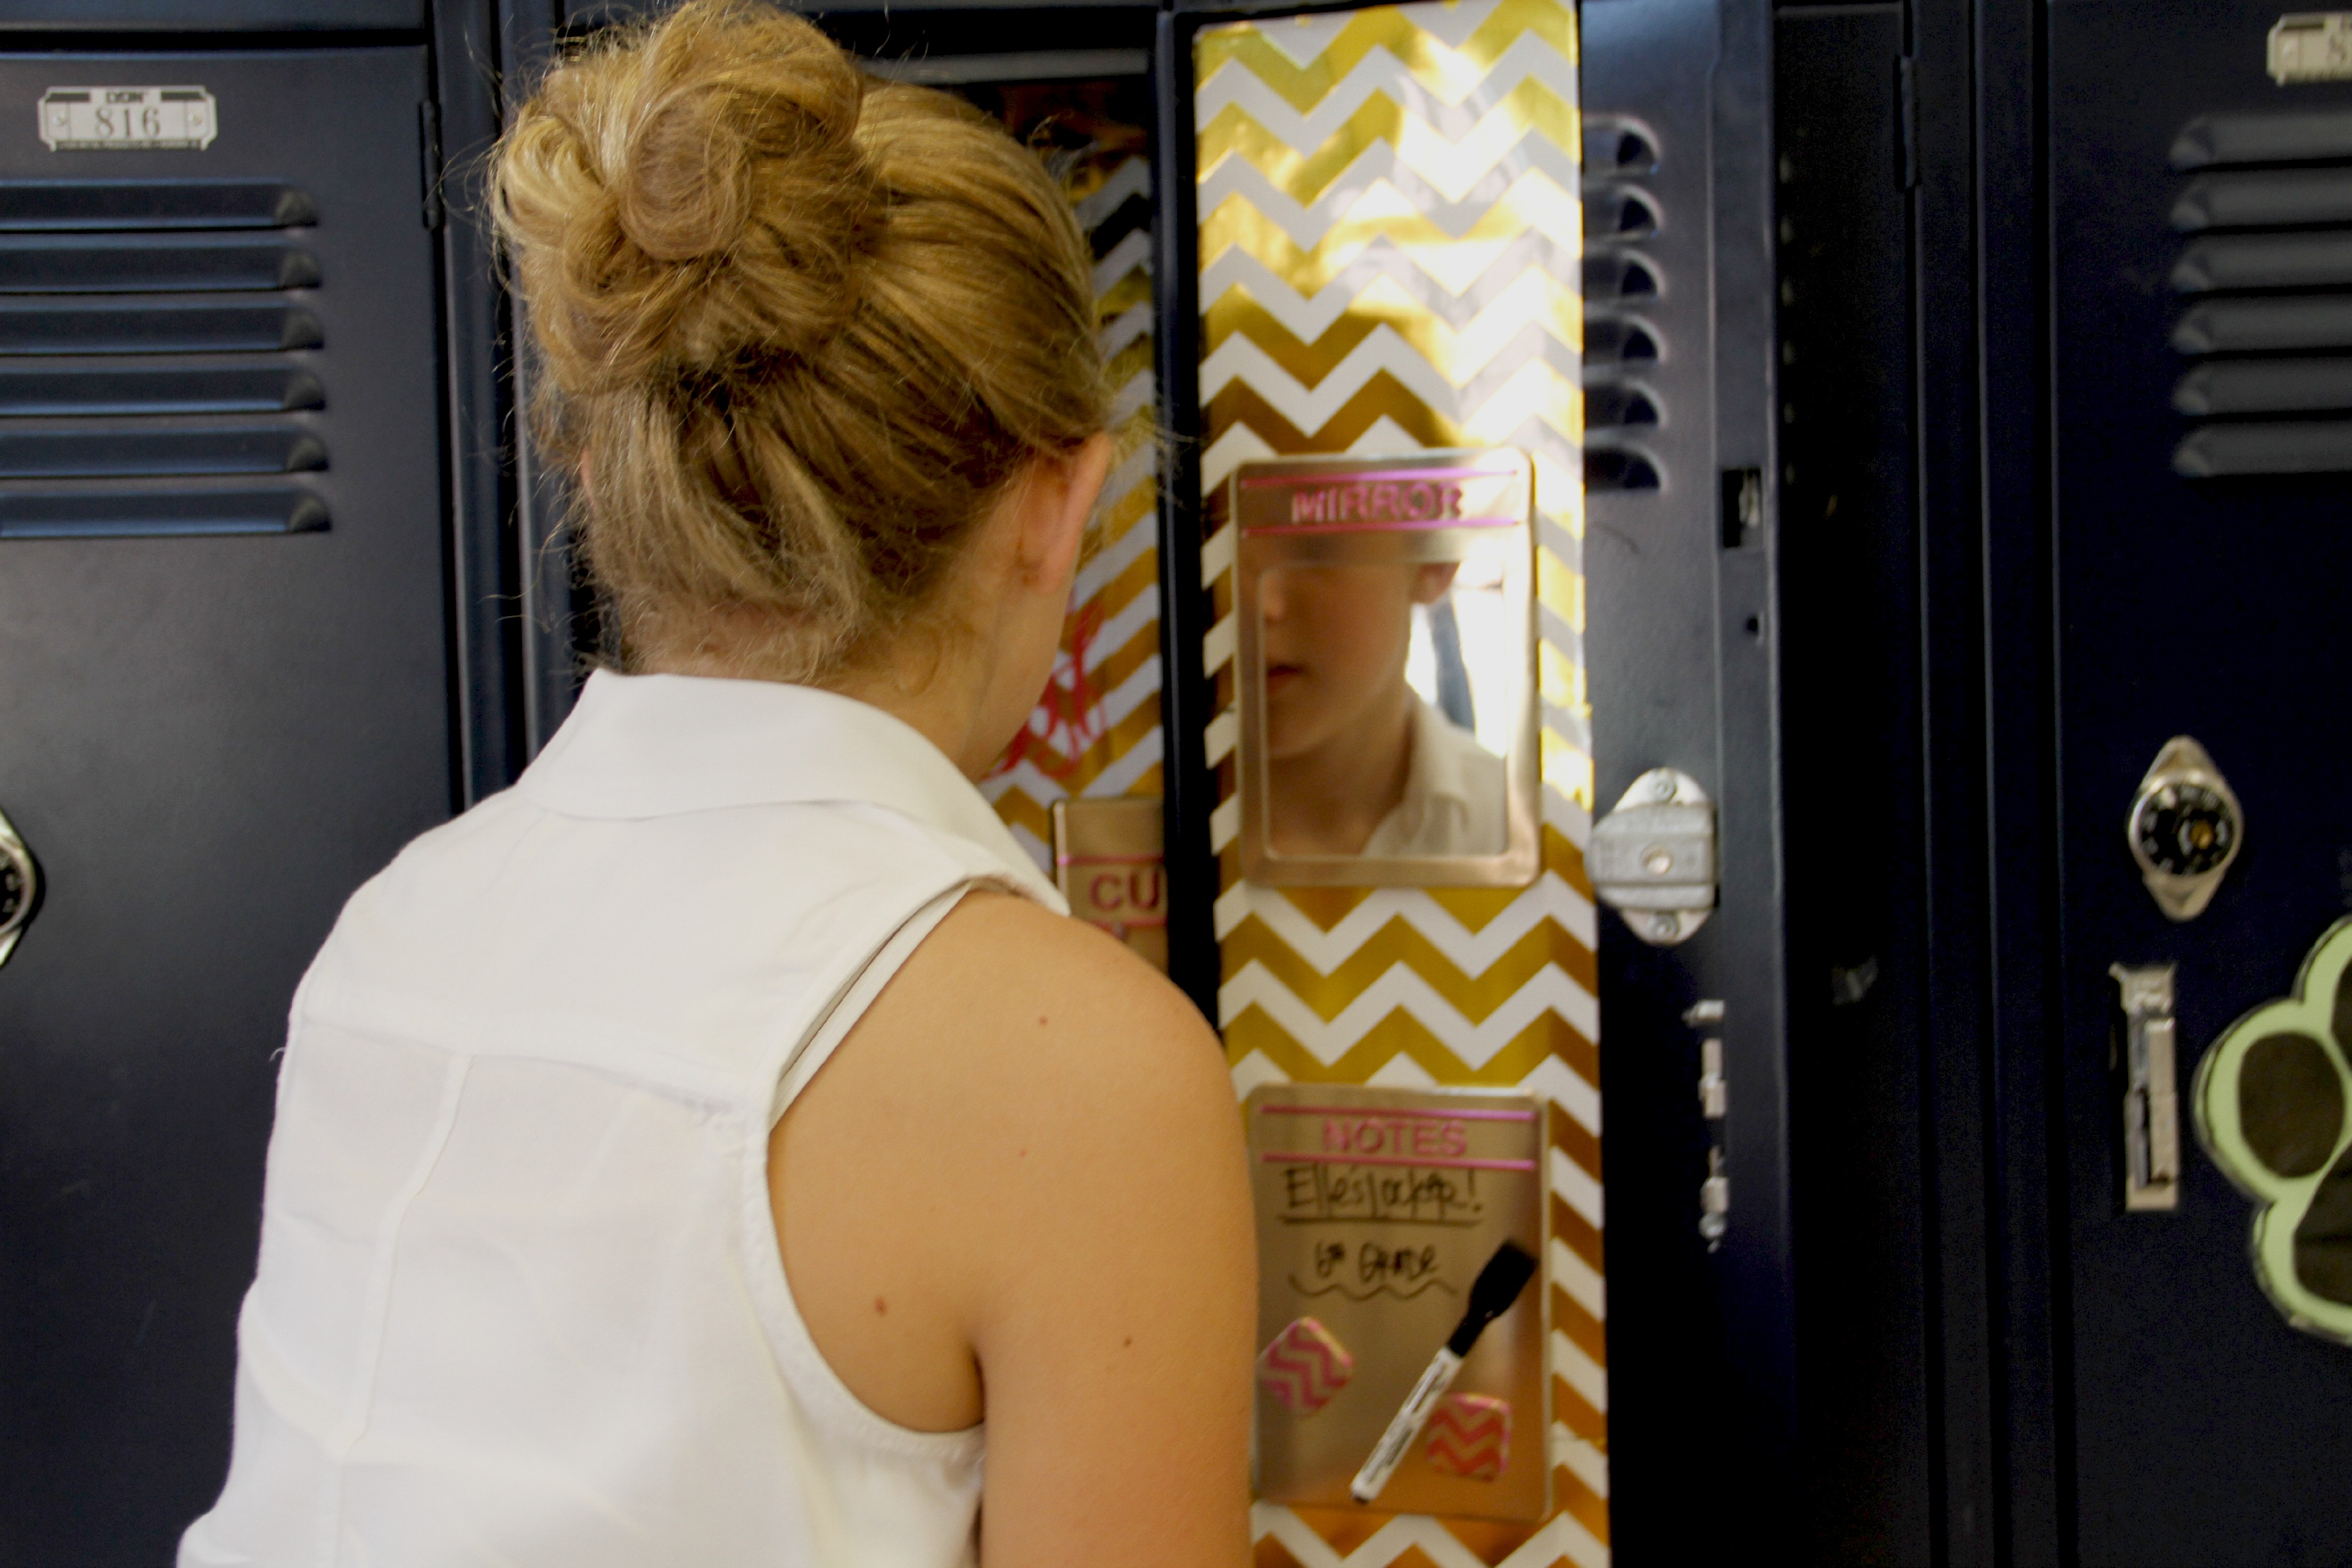 Glammed Up Locker Calicrest